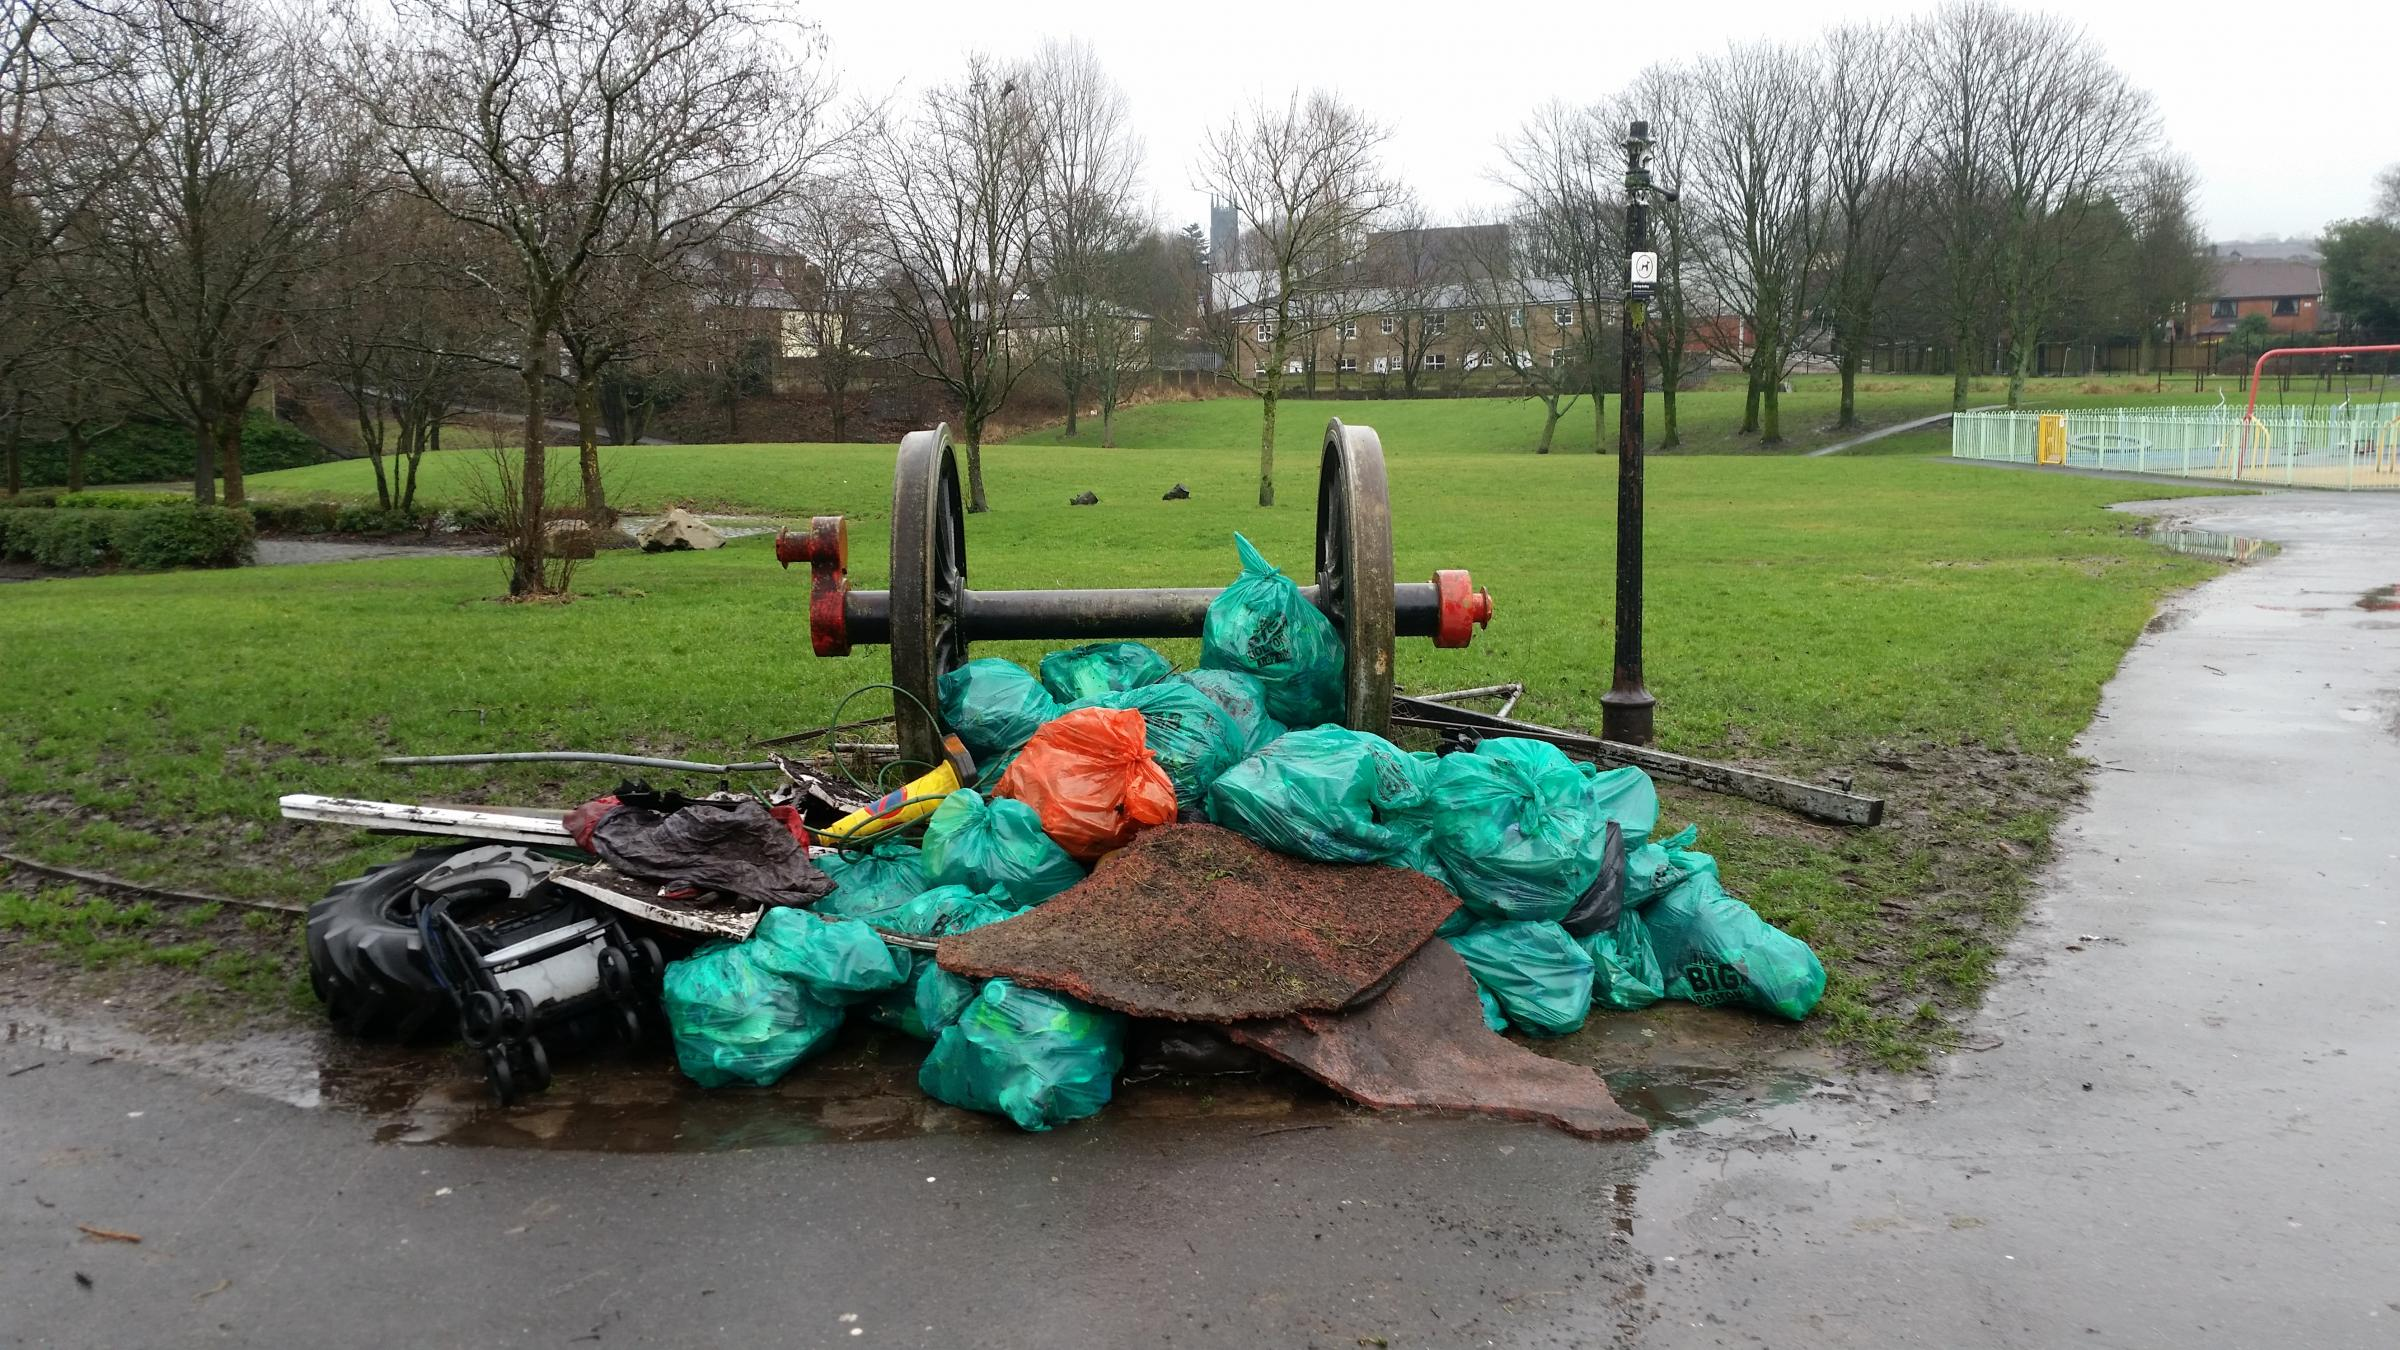 Bags of rubbish after litter pick at Old Station Park in Horwich